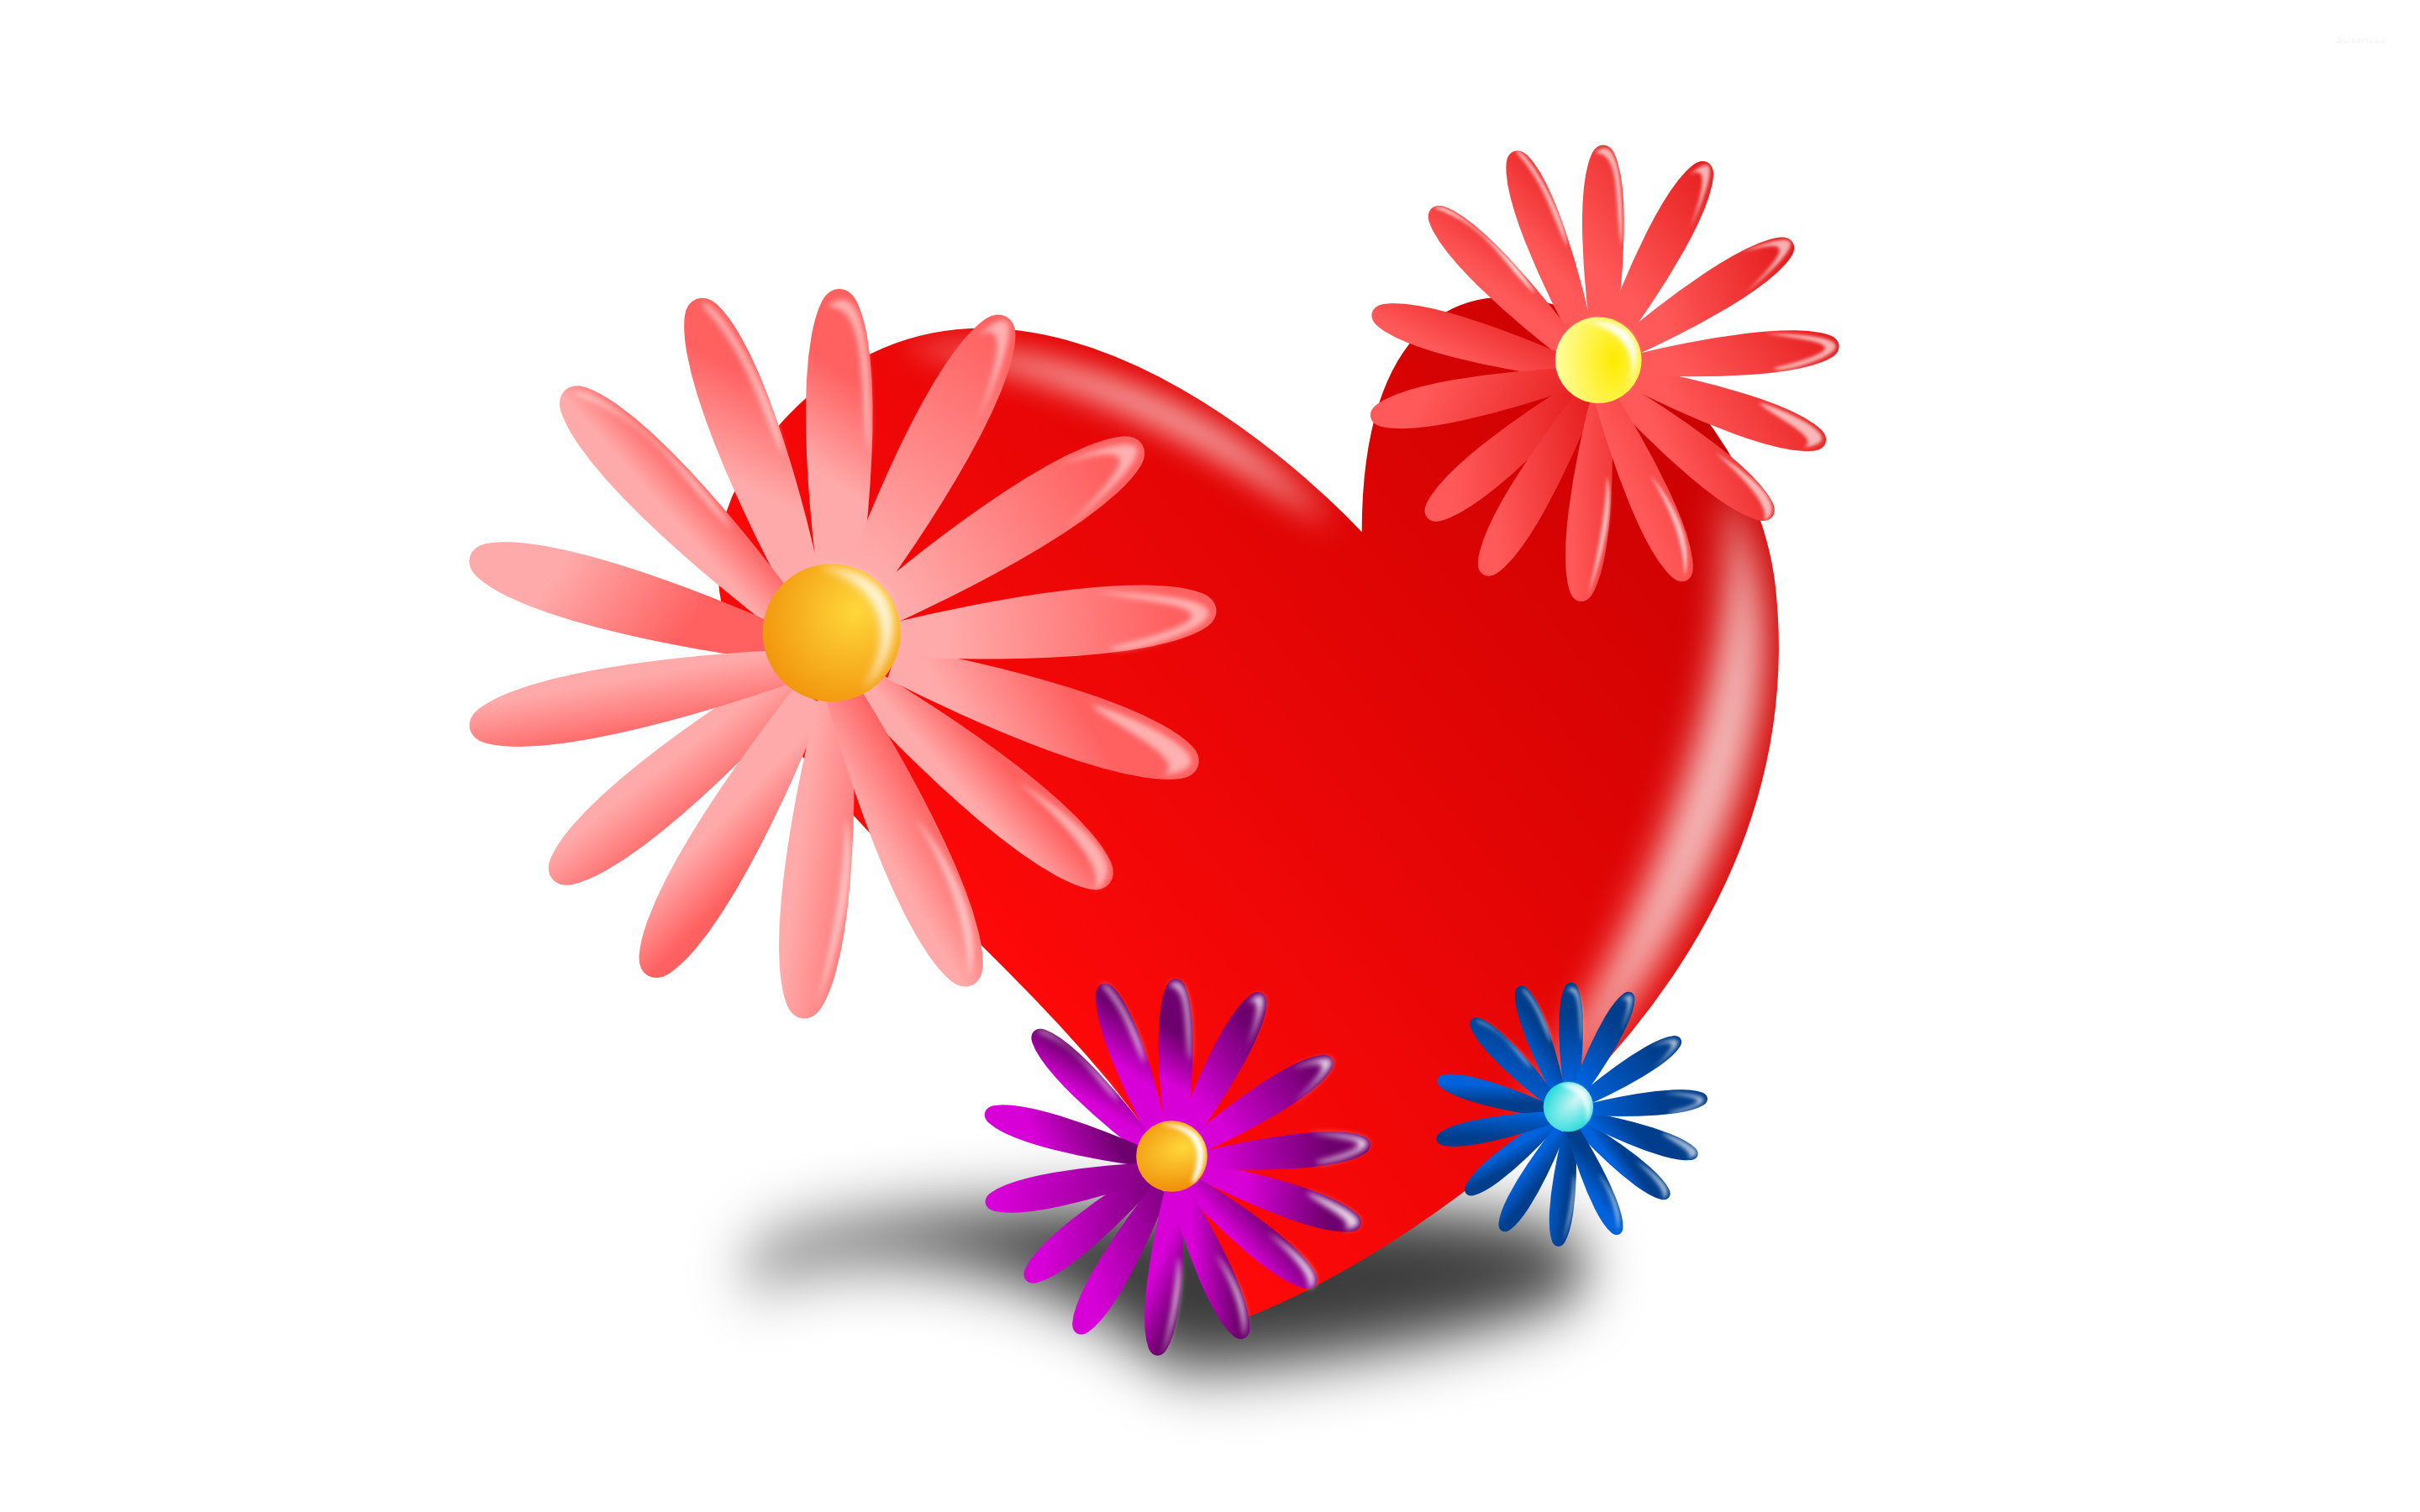 Flowers and hearts wallpaper Vector wallpapers